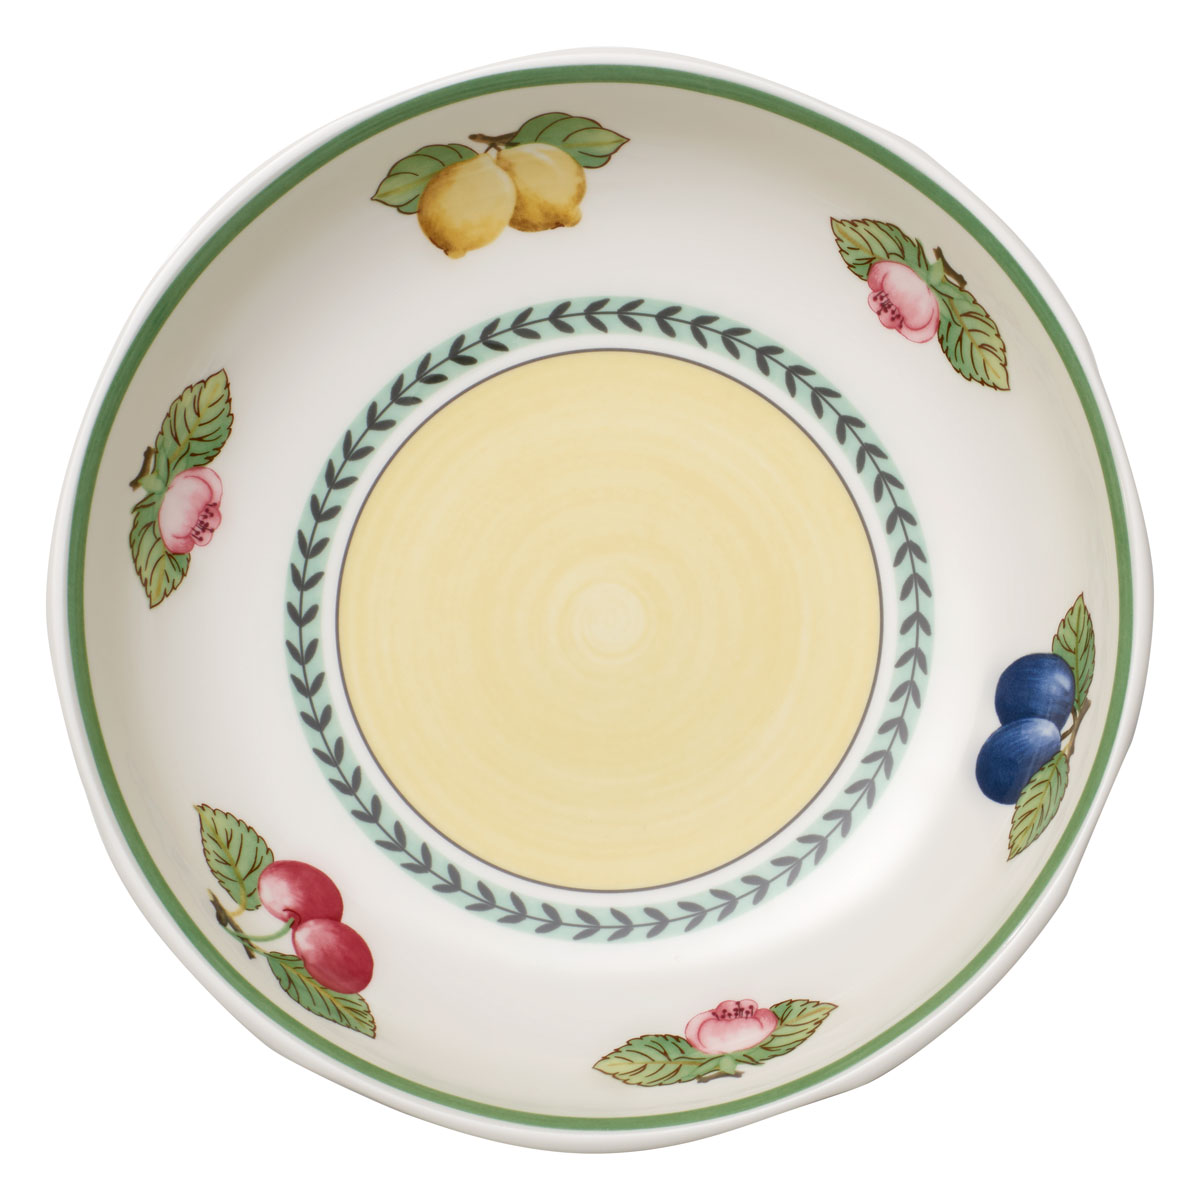 Villeroy and Boch French Garden Fleurence Pasta Bowl